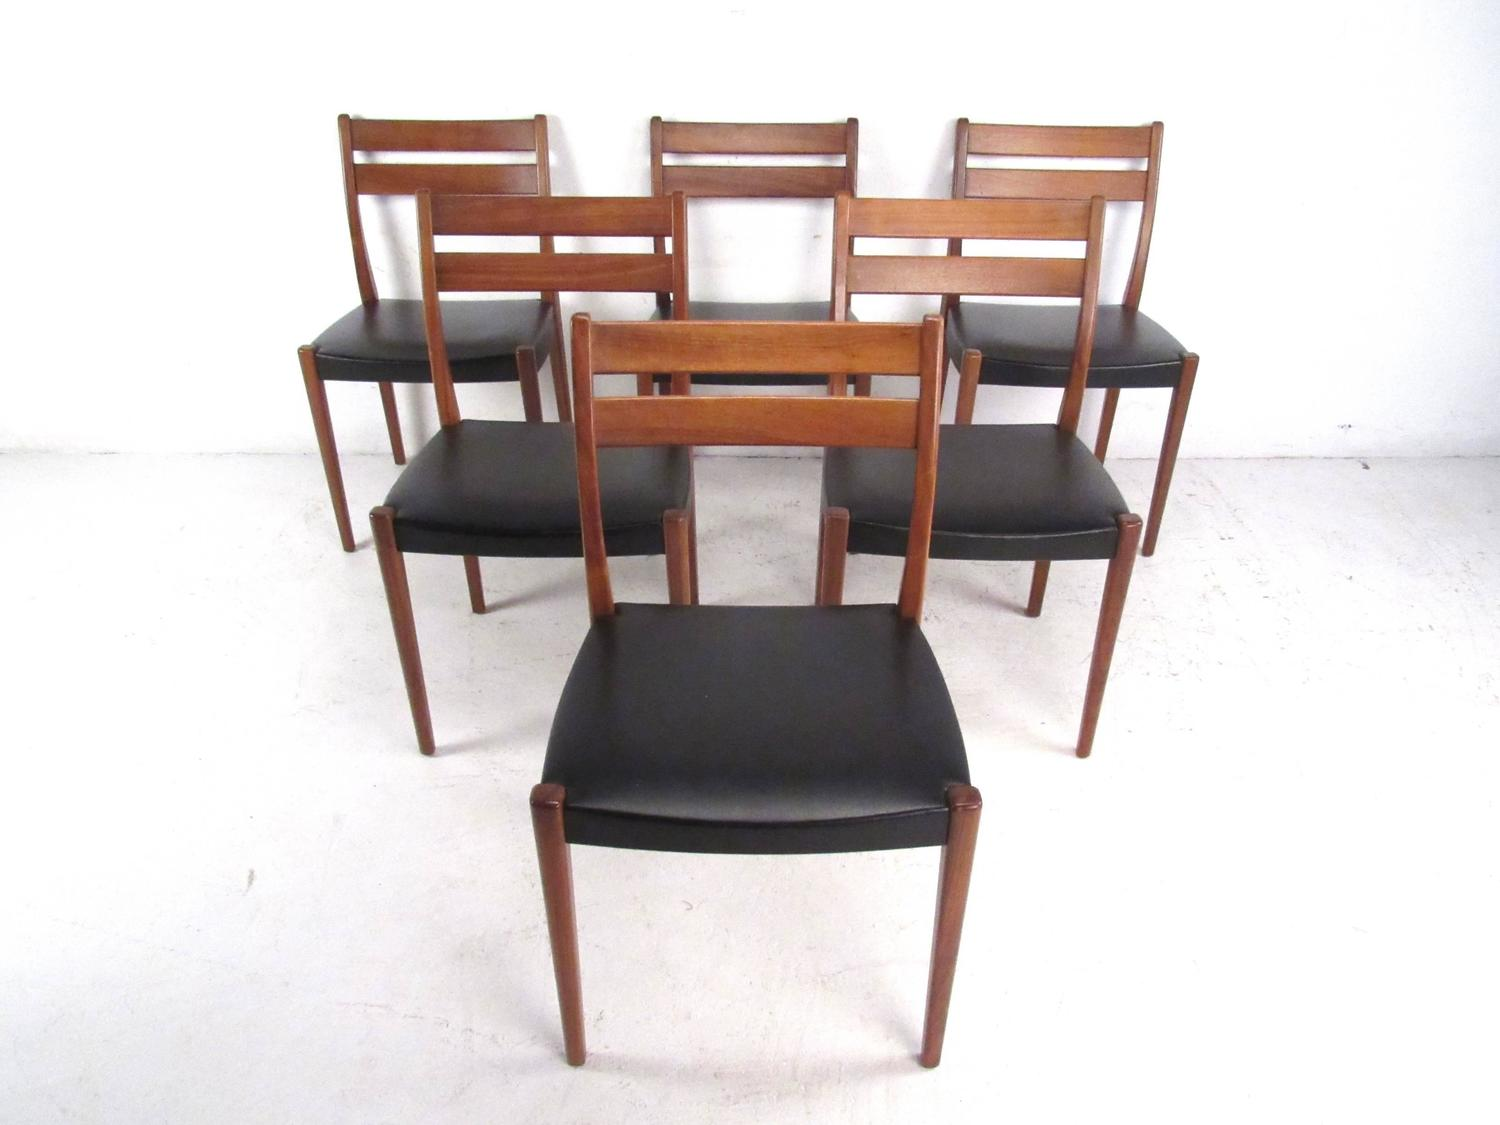 Mid century modern scandinavian teak dining set with extension table at 1stdibs - Extension tables dining room furniture ...